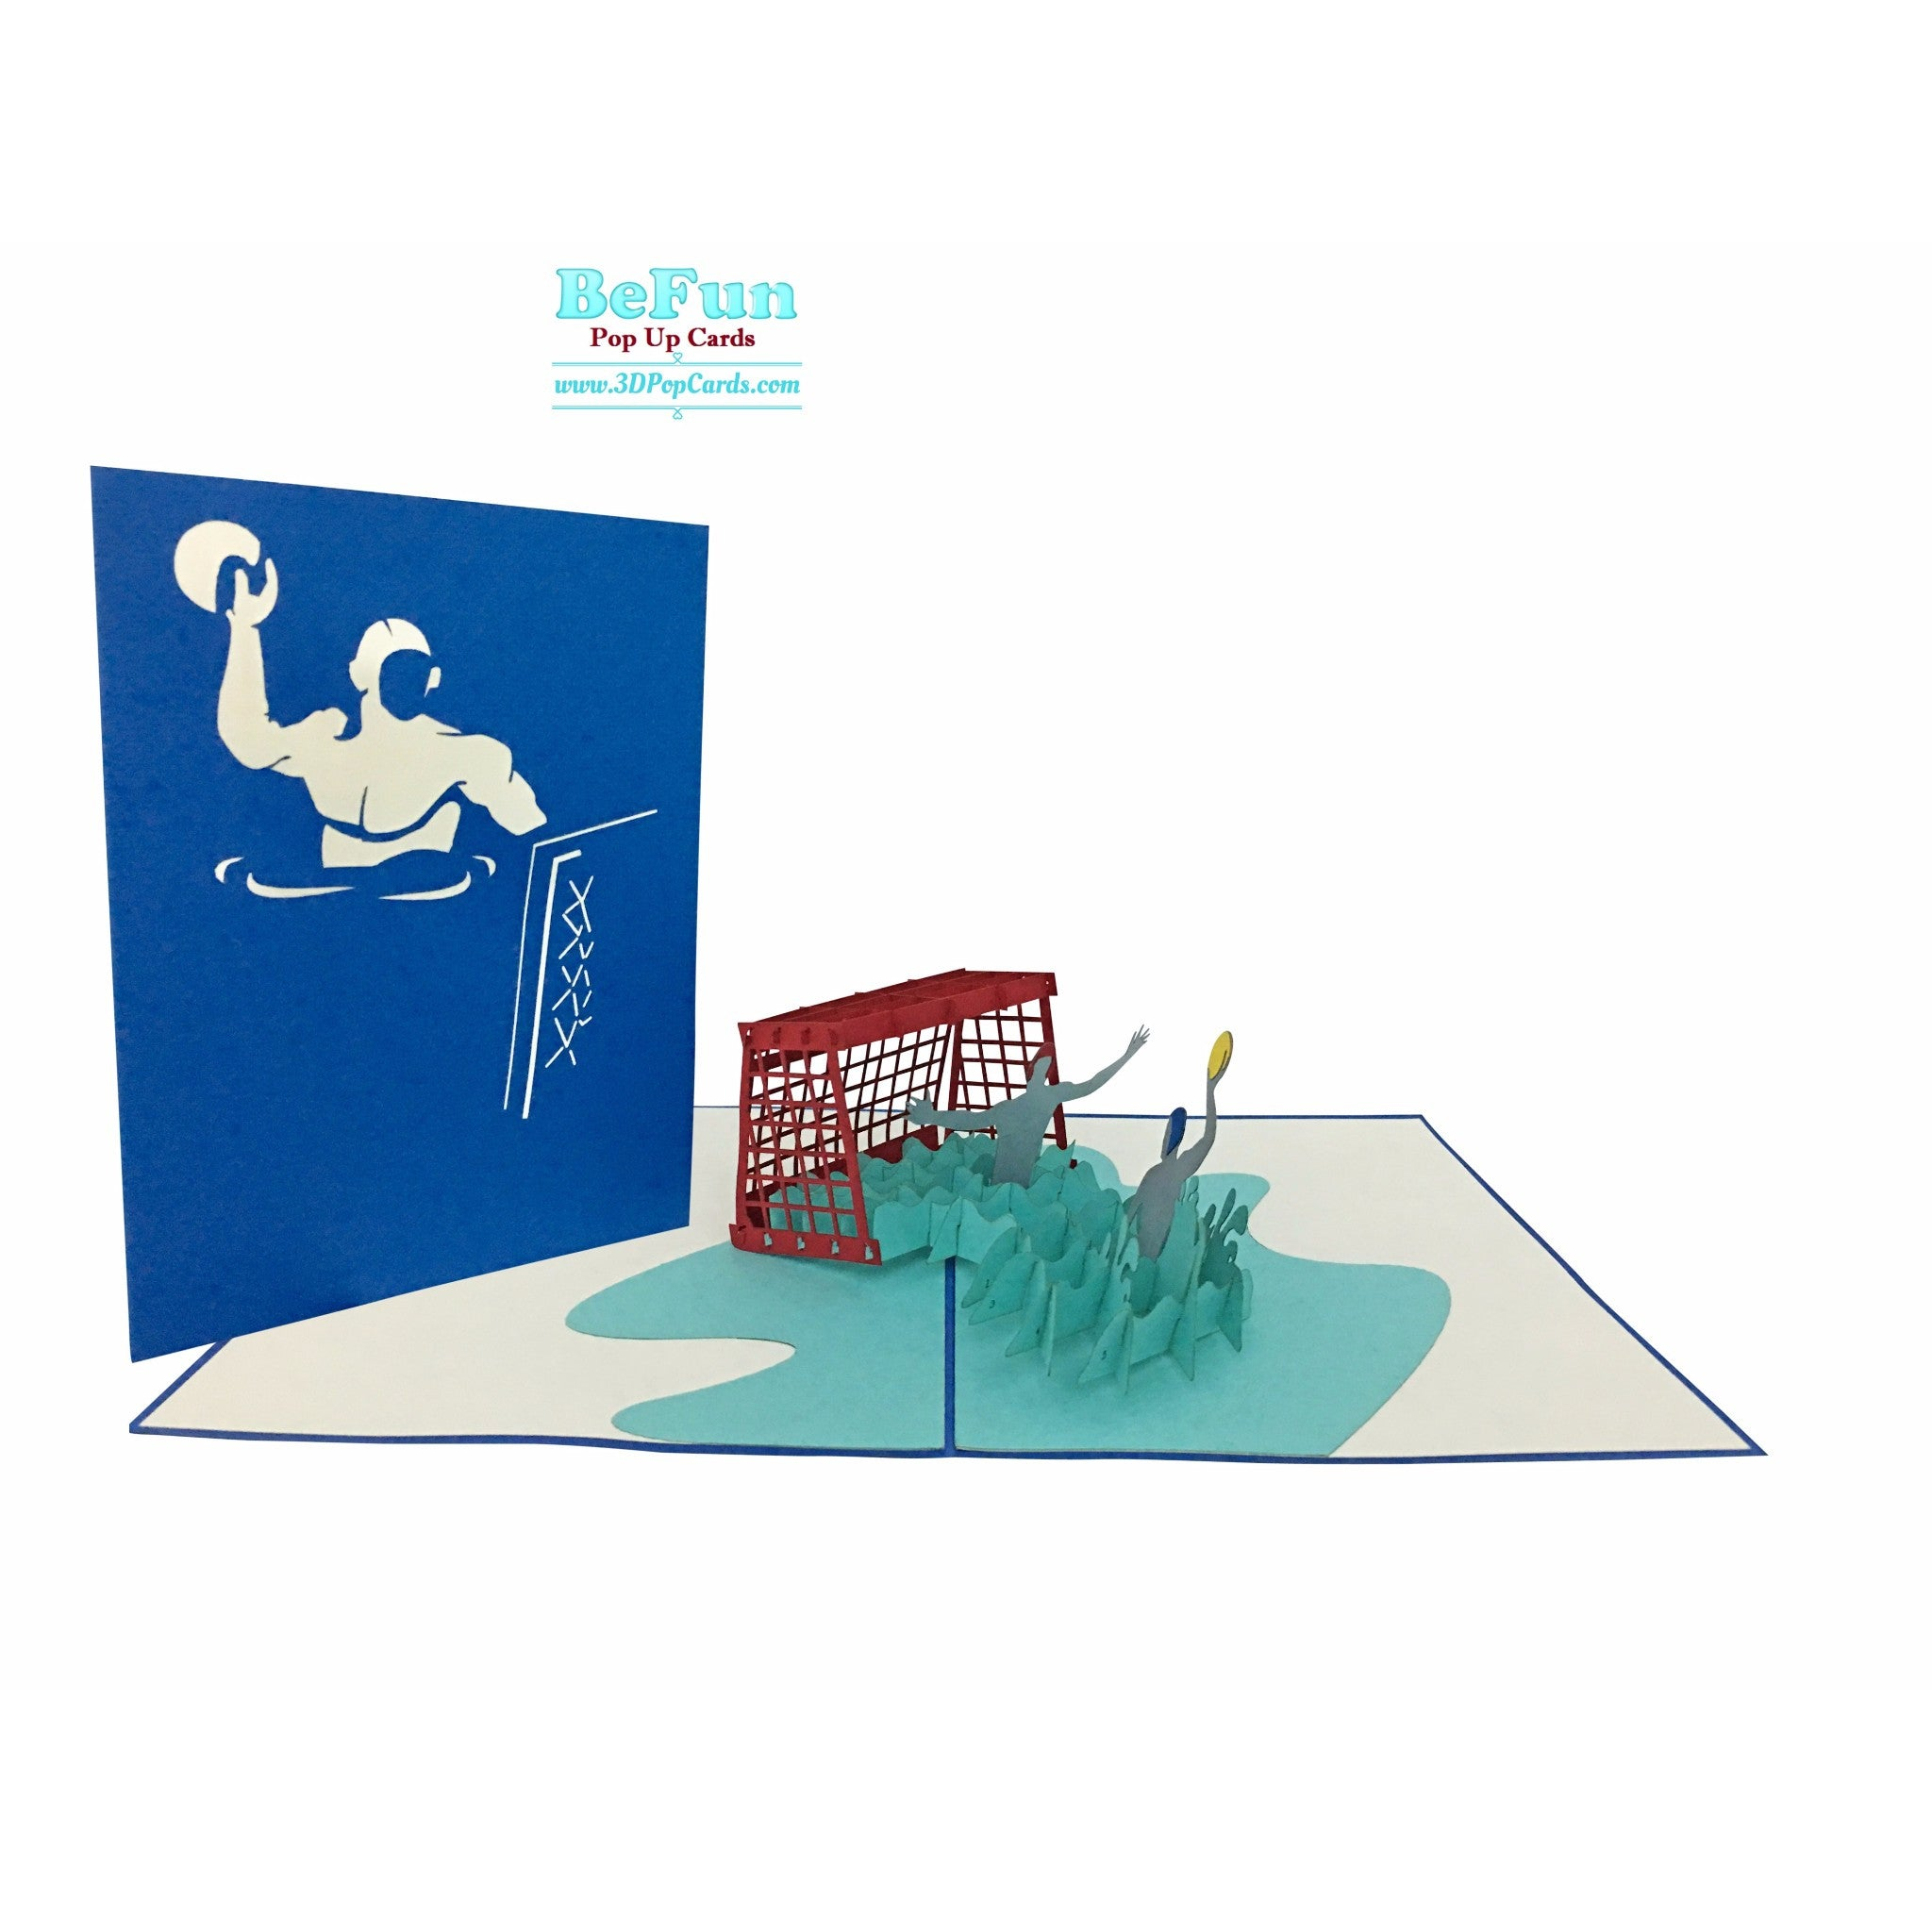 Water polo swimming pop up greeting card unique gift for sport fans water polo swimming pop up card kristyandbryce Choice Image